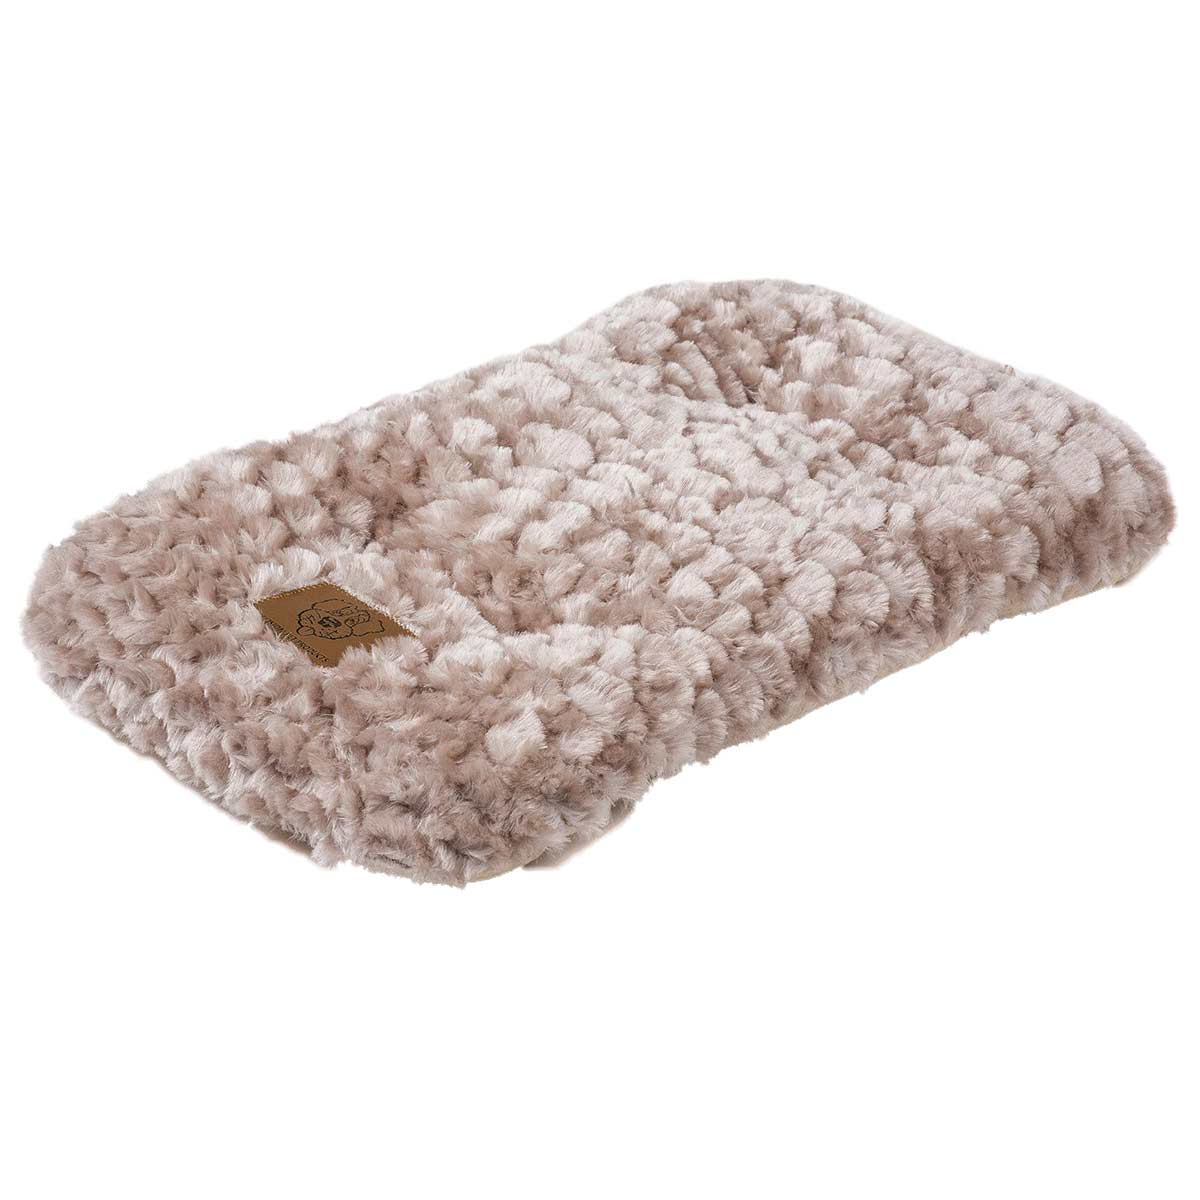 Snoozzy Comforter Natural Tan Pet Bed - 18 inches by 12 inches